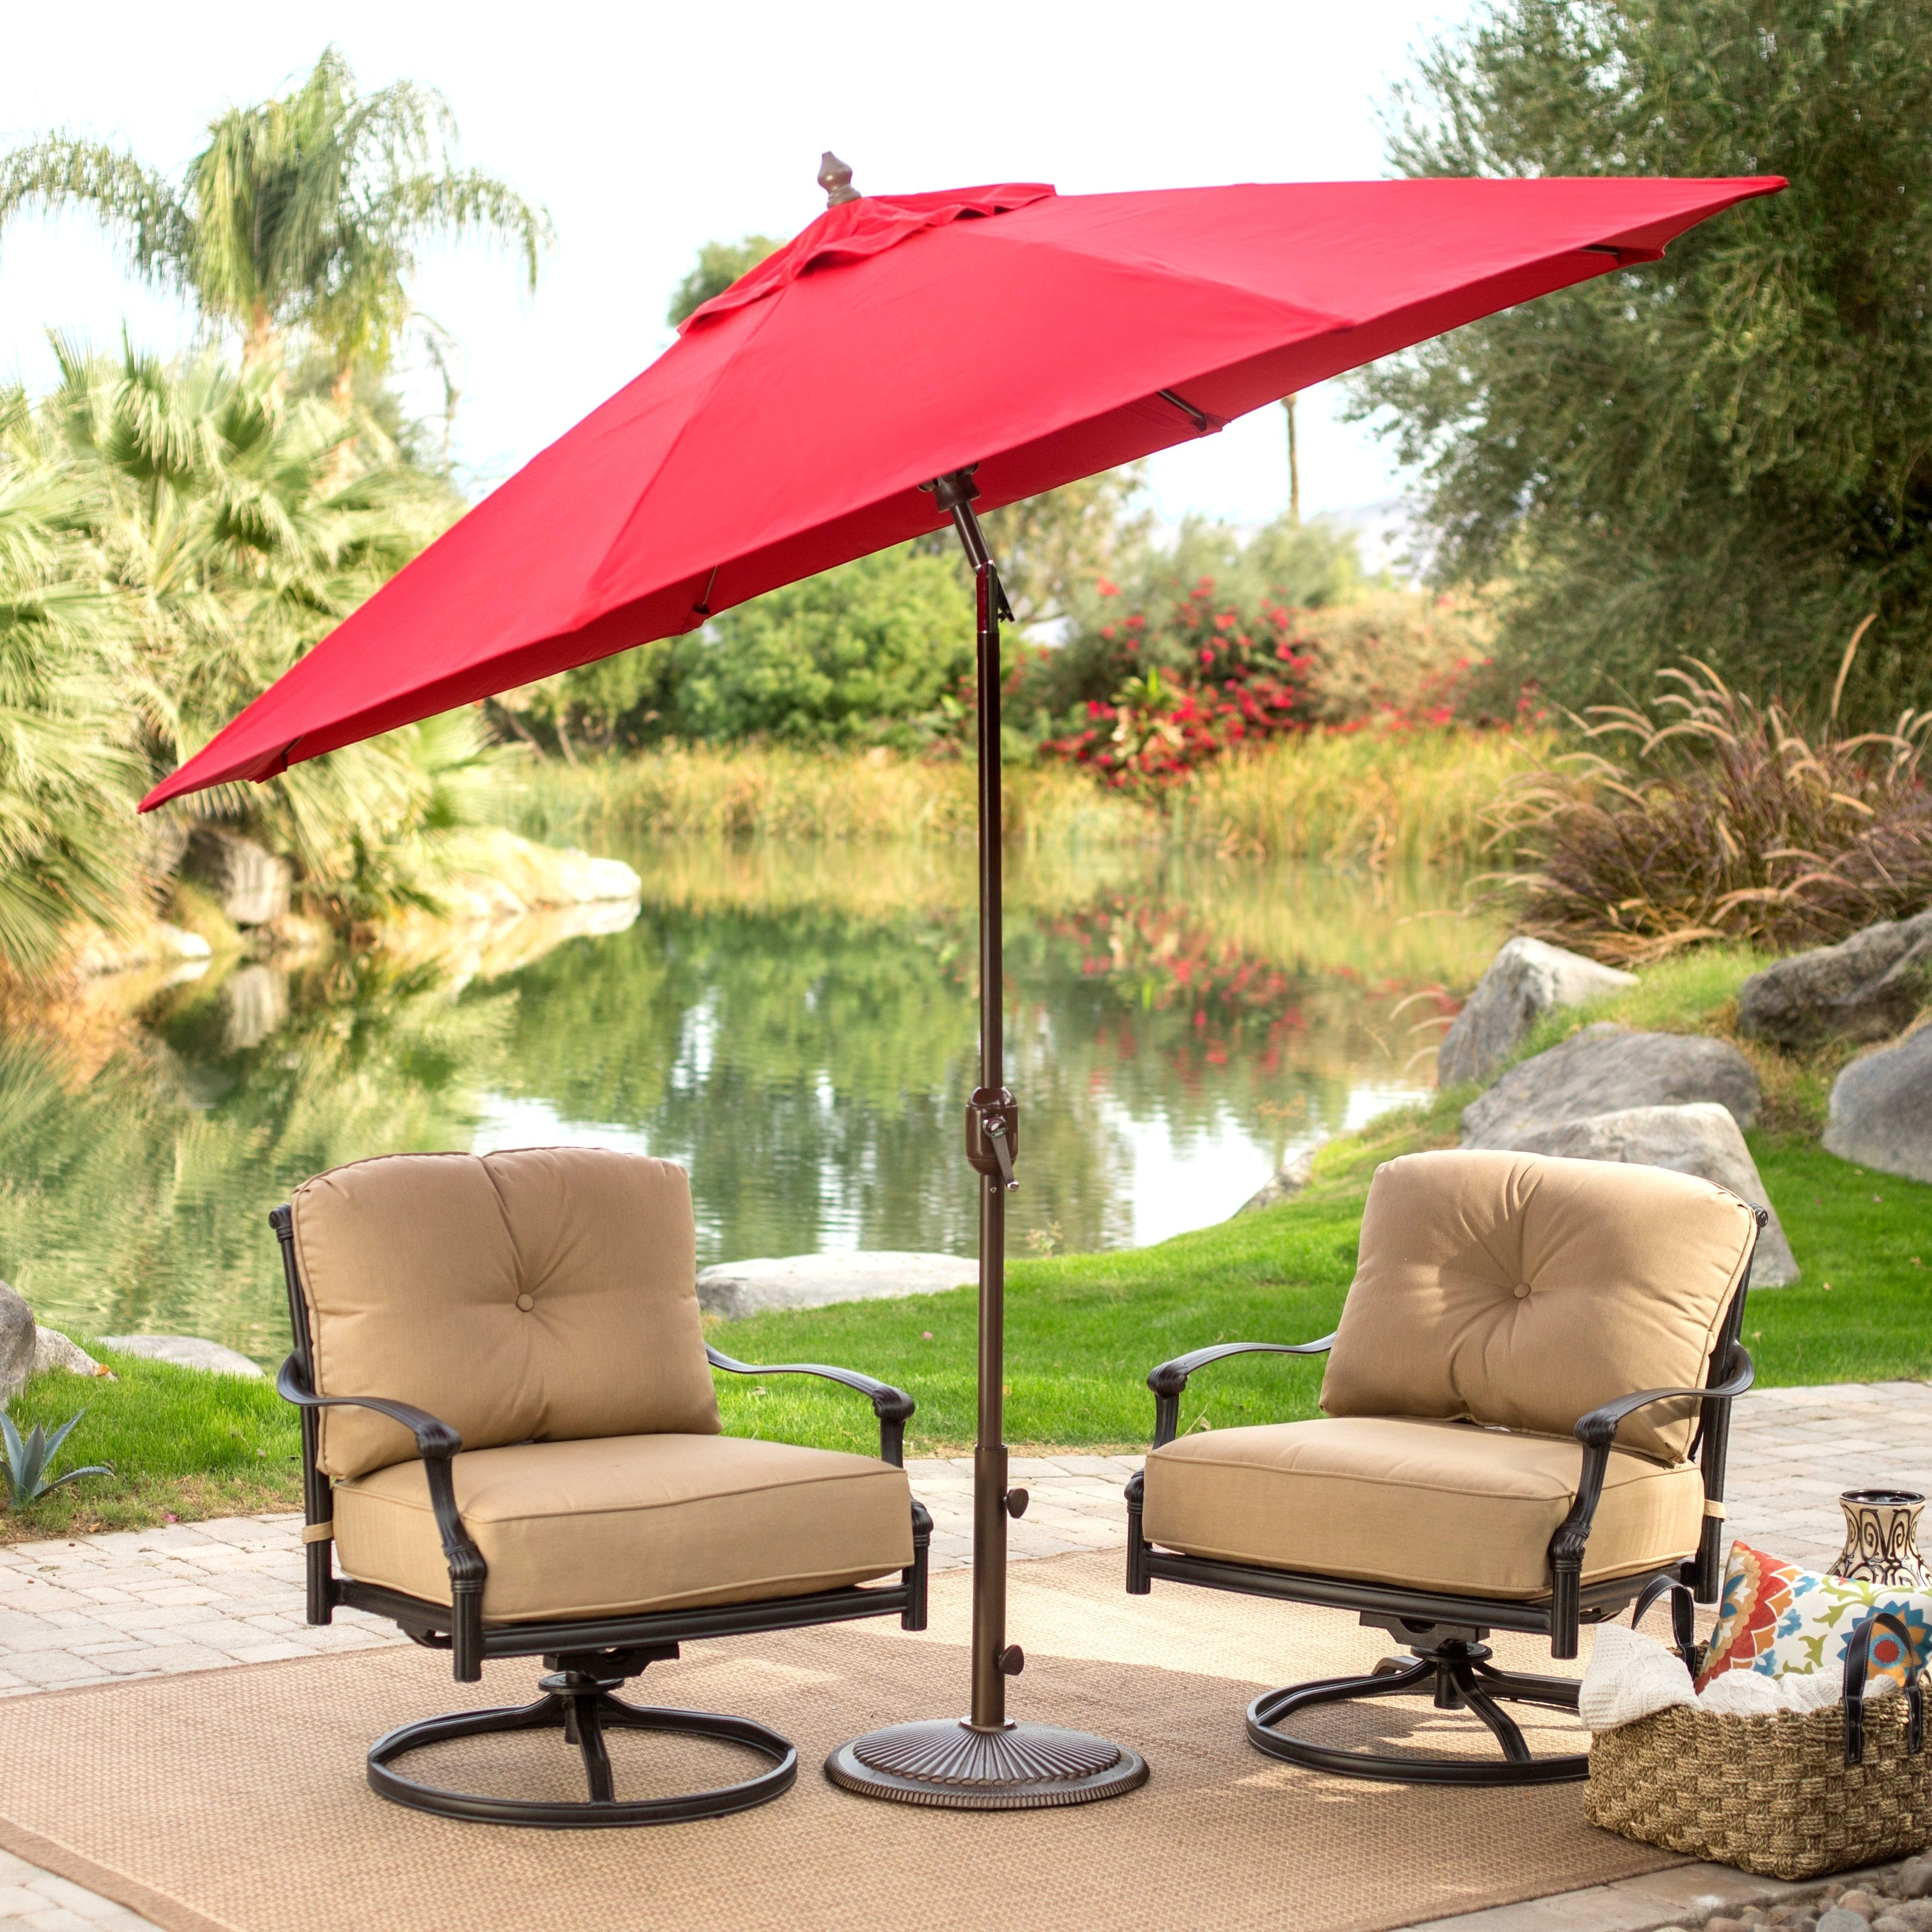 Patio Design Ideas In Free Standing Umbrellas For Patio (View 18 of 20)